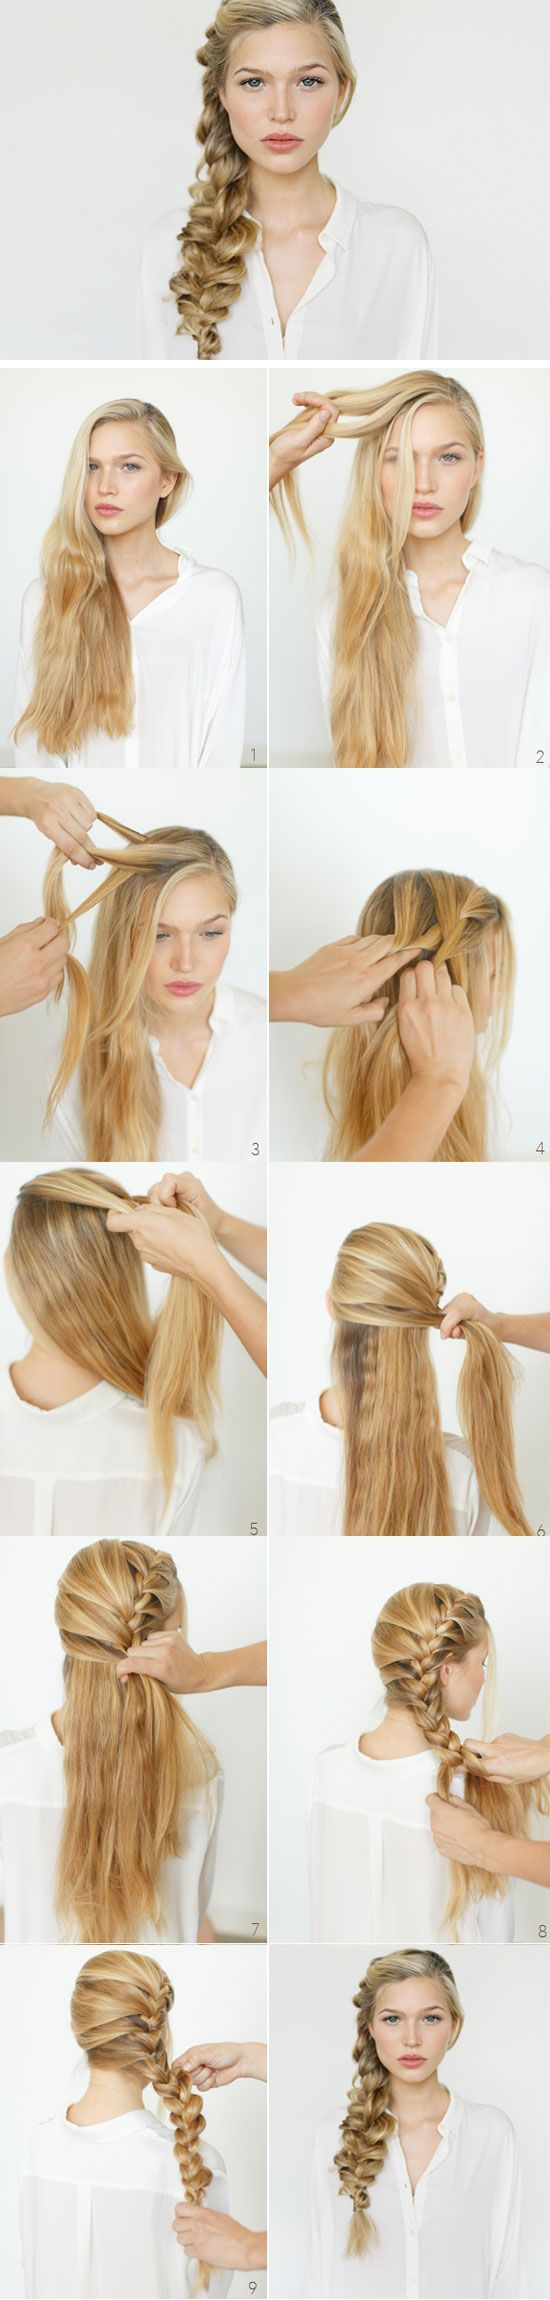 Easy DIY Wedding Hairstyles for Long Hair | Medium hair, Easy ...